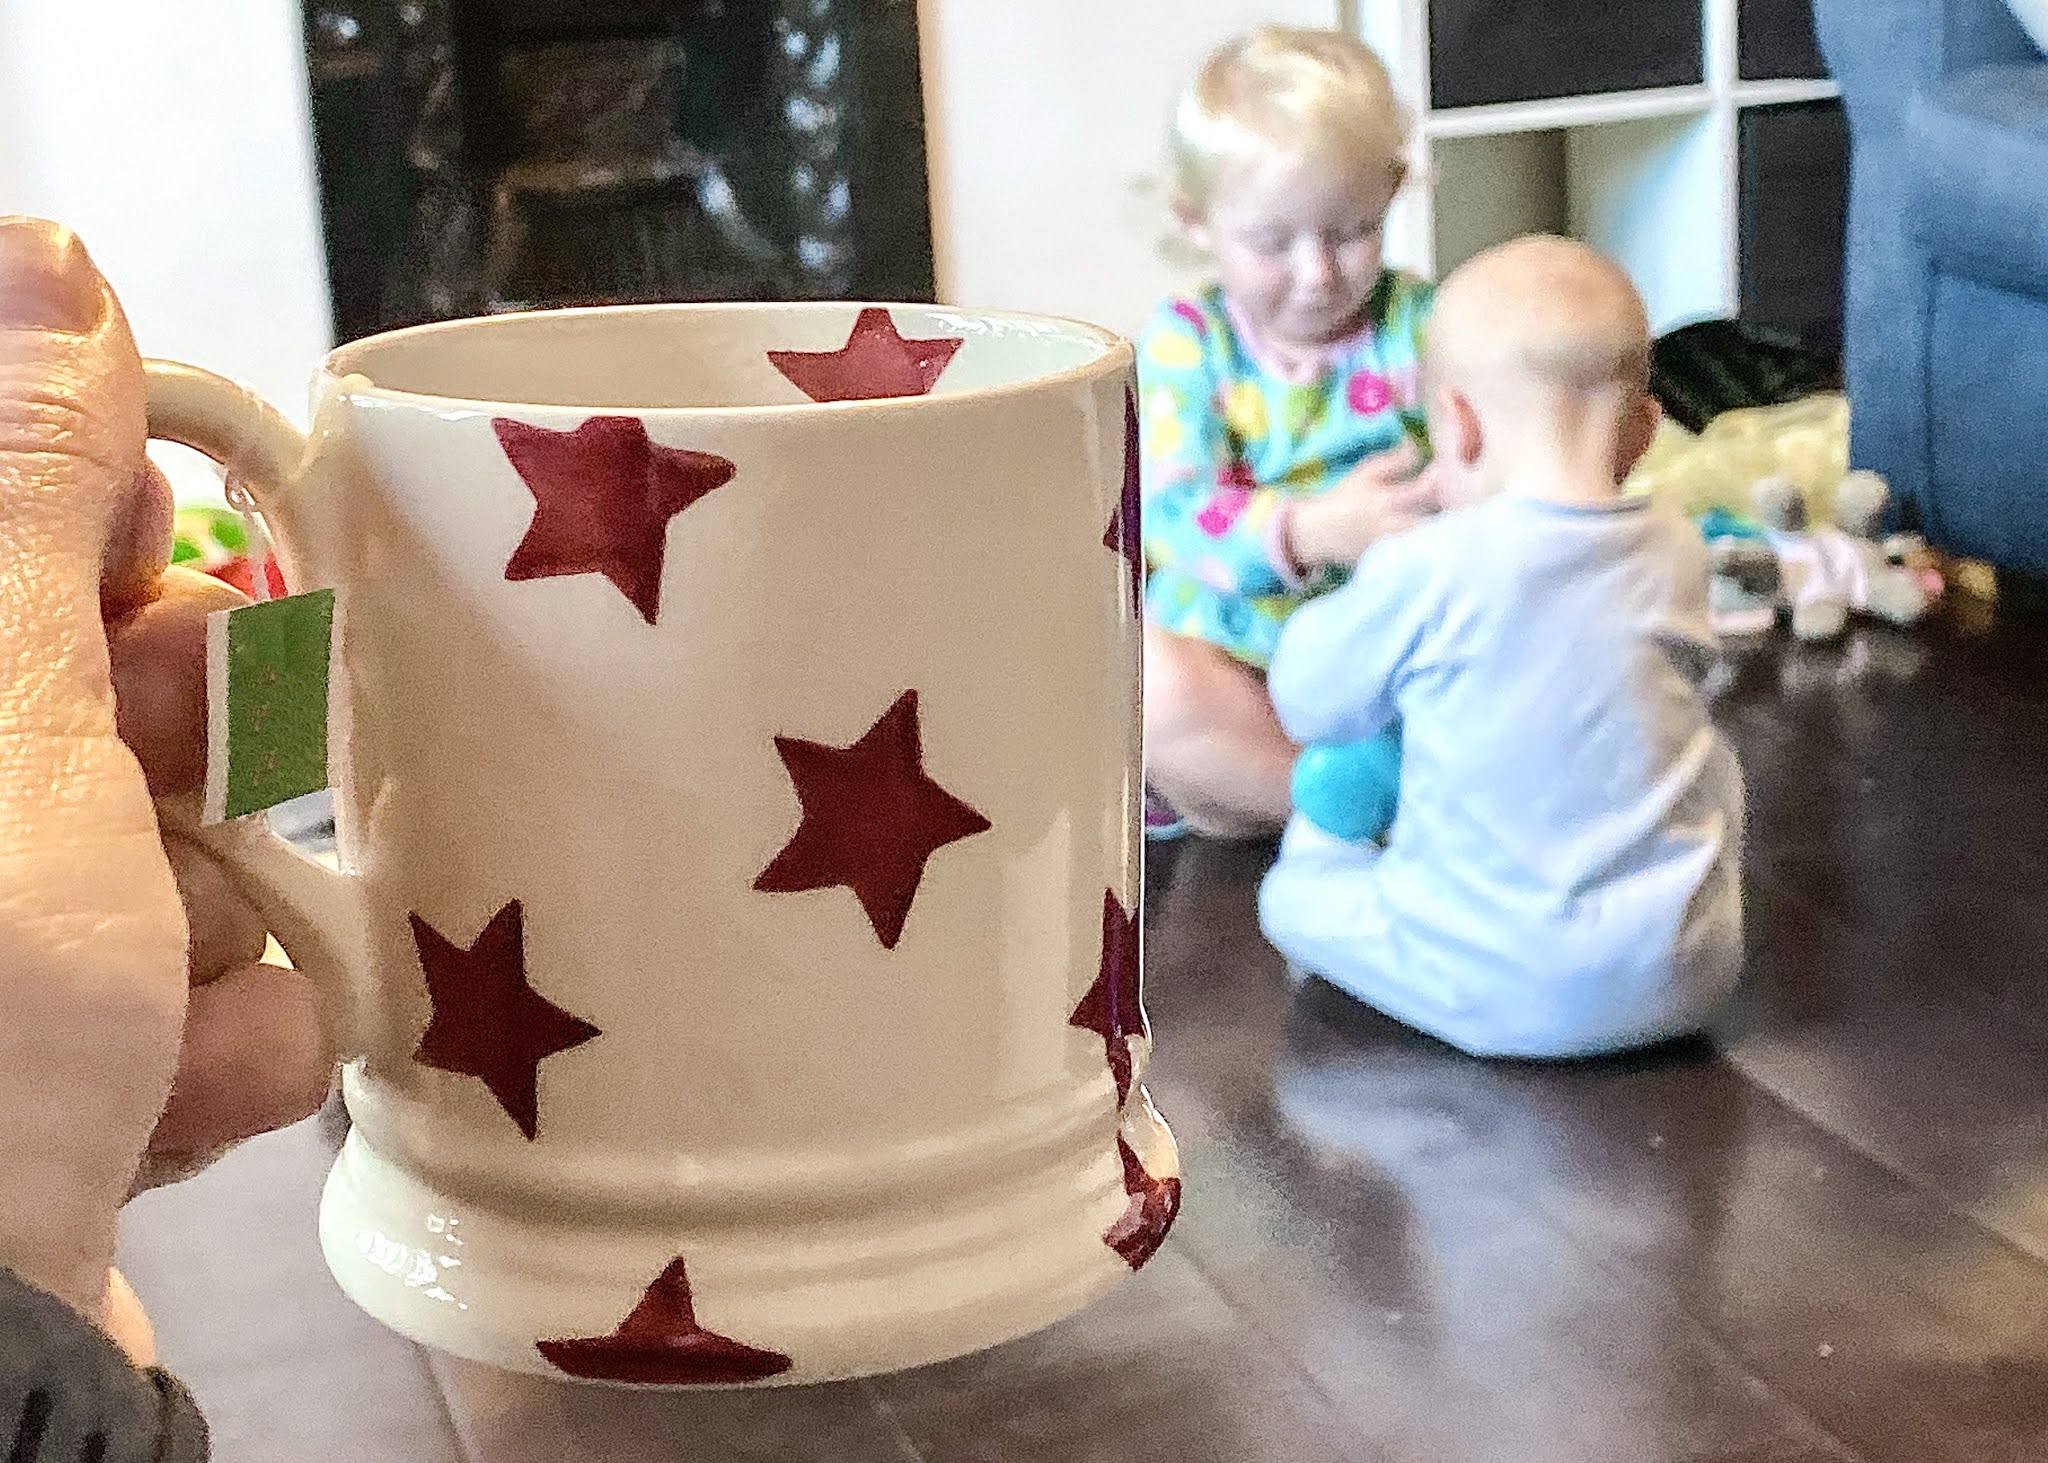 A cup of tea being held with children playing in the background in a low maintenance to clean and tidy house